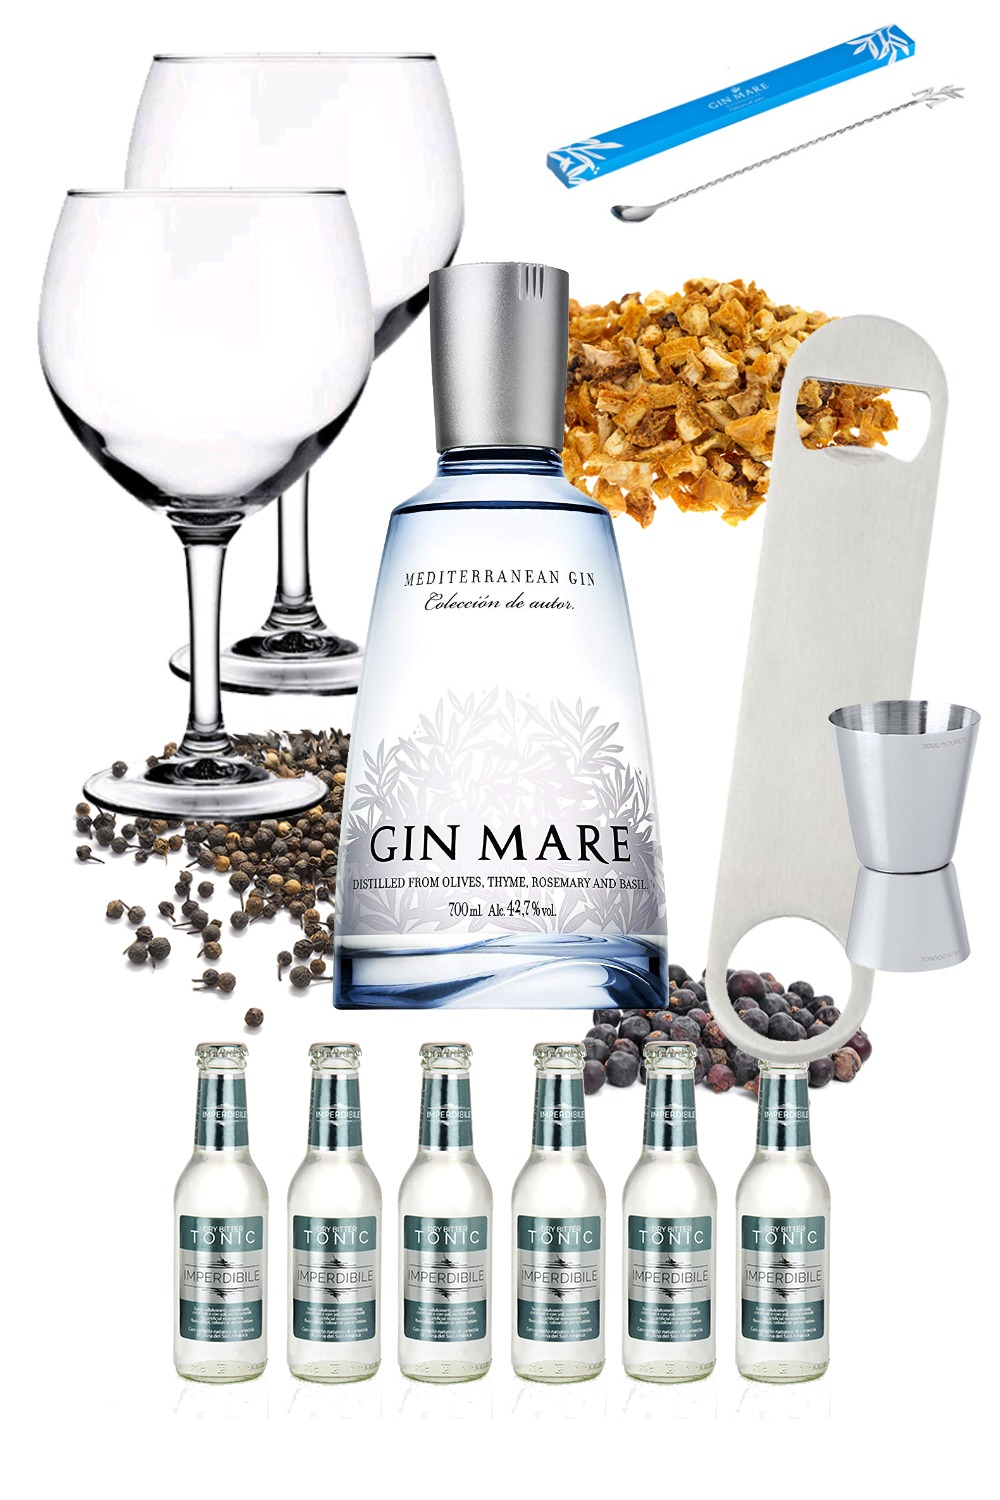 Gin Mare – Mission Ginpossible